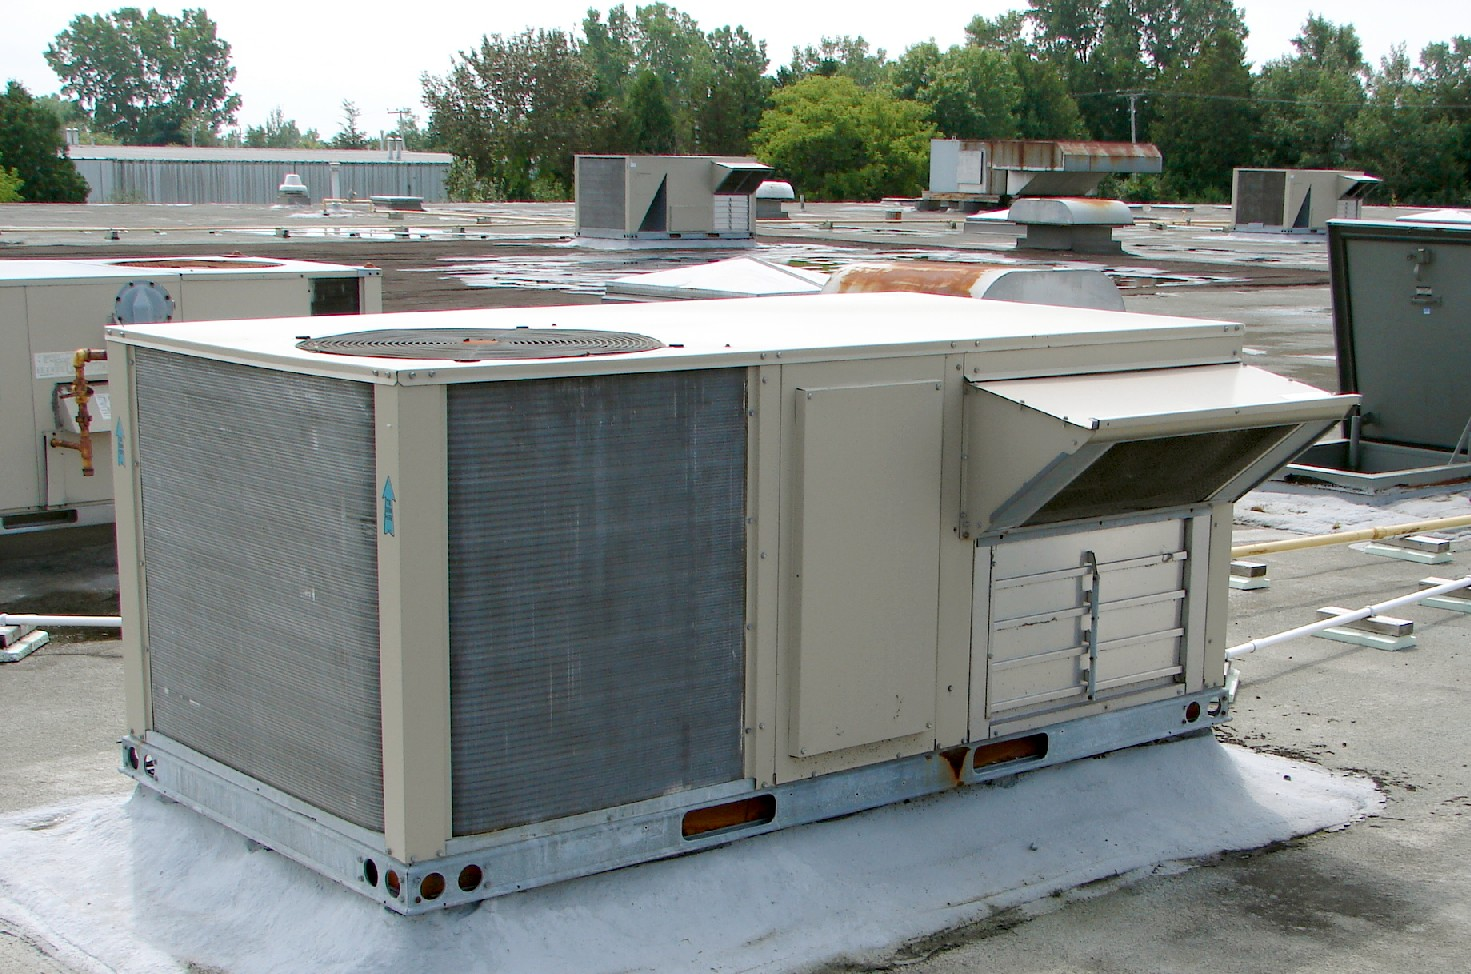 Archivo Rooftop Packaged Units Jpg Wikipedia La